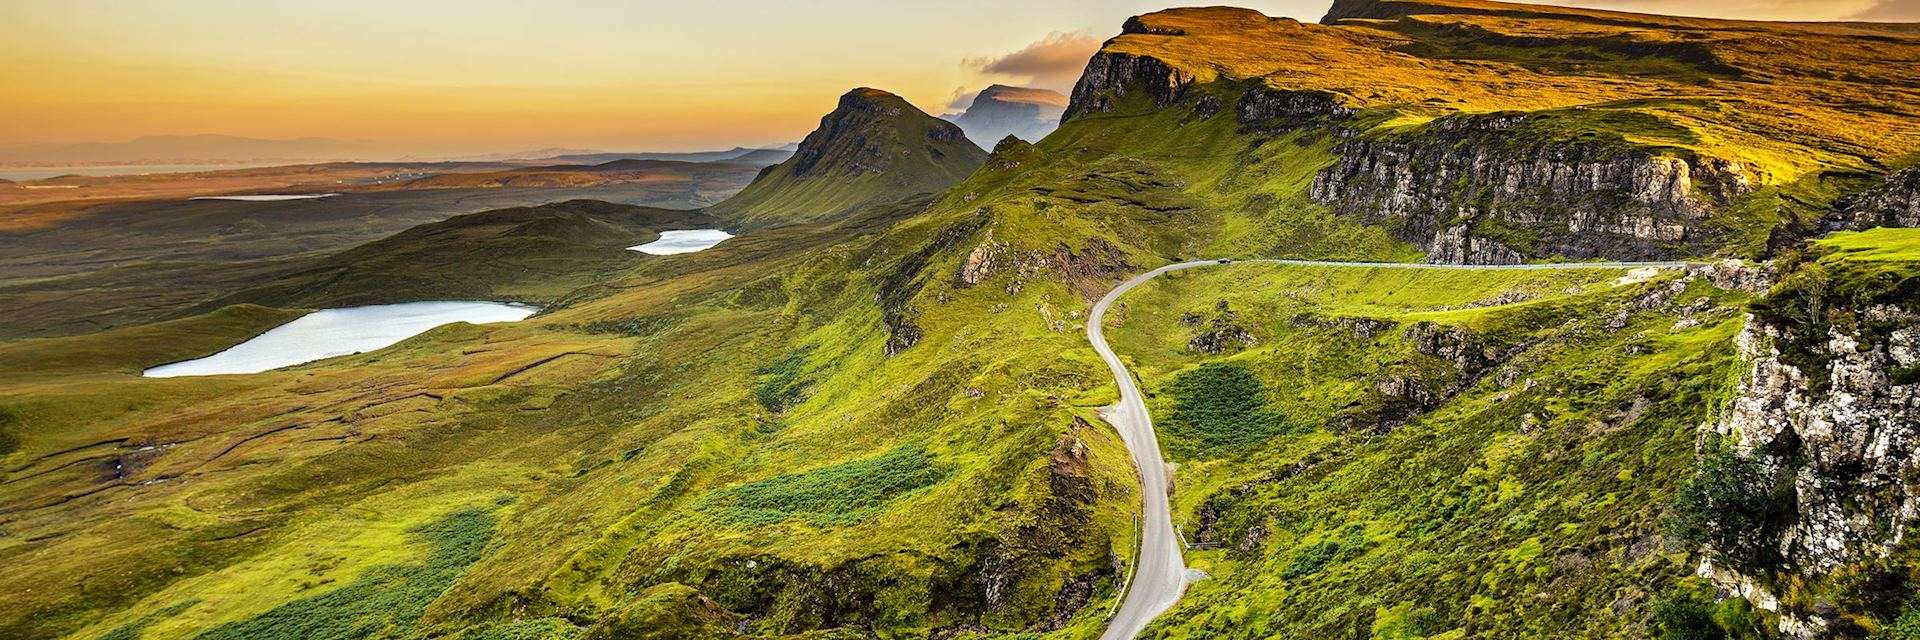 Quiraing Mountains, Scotland